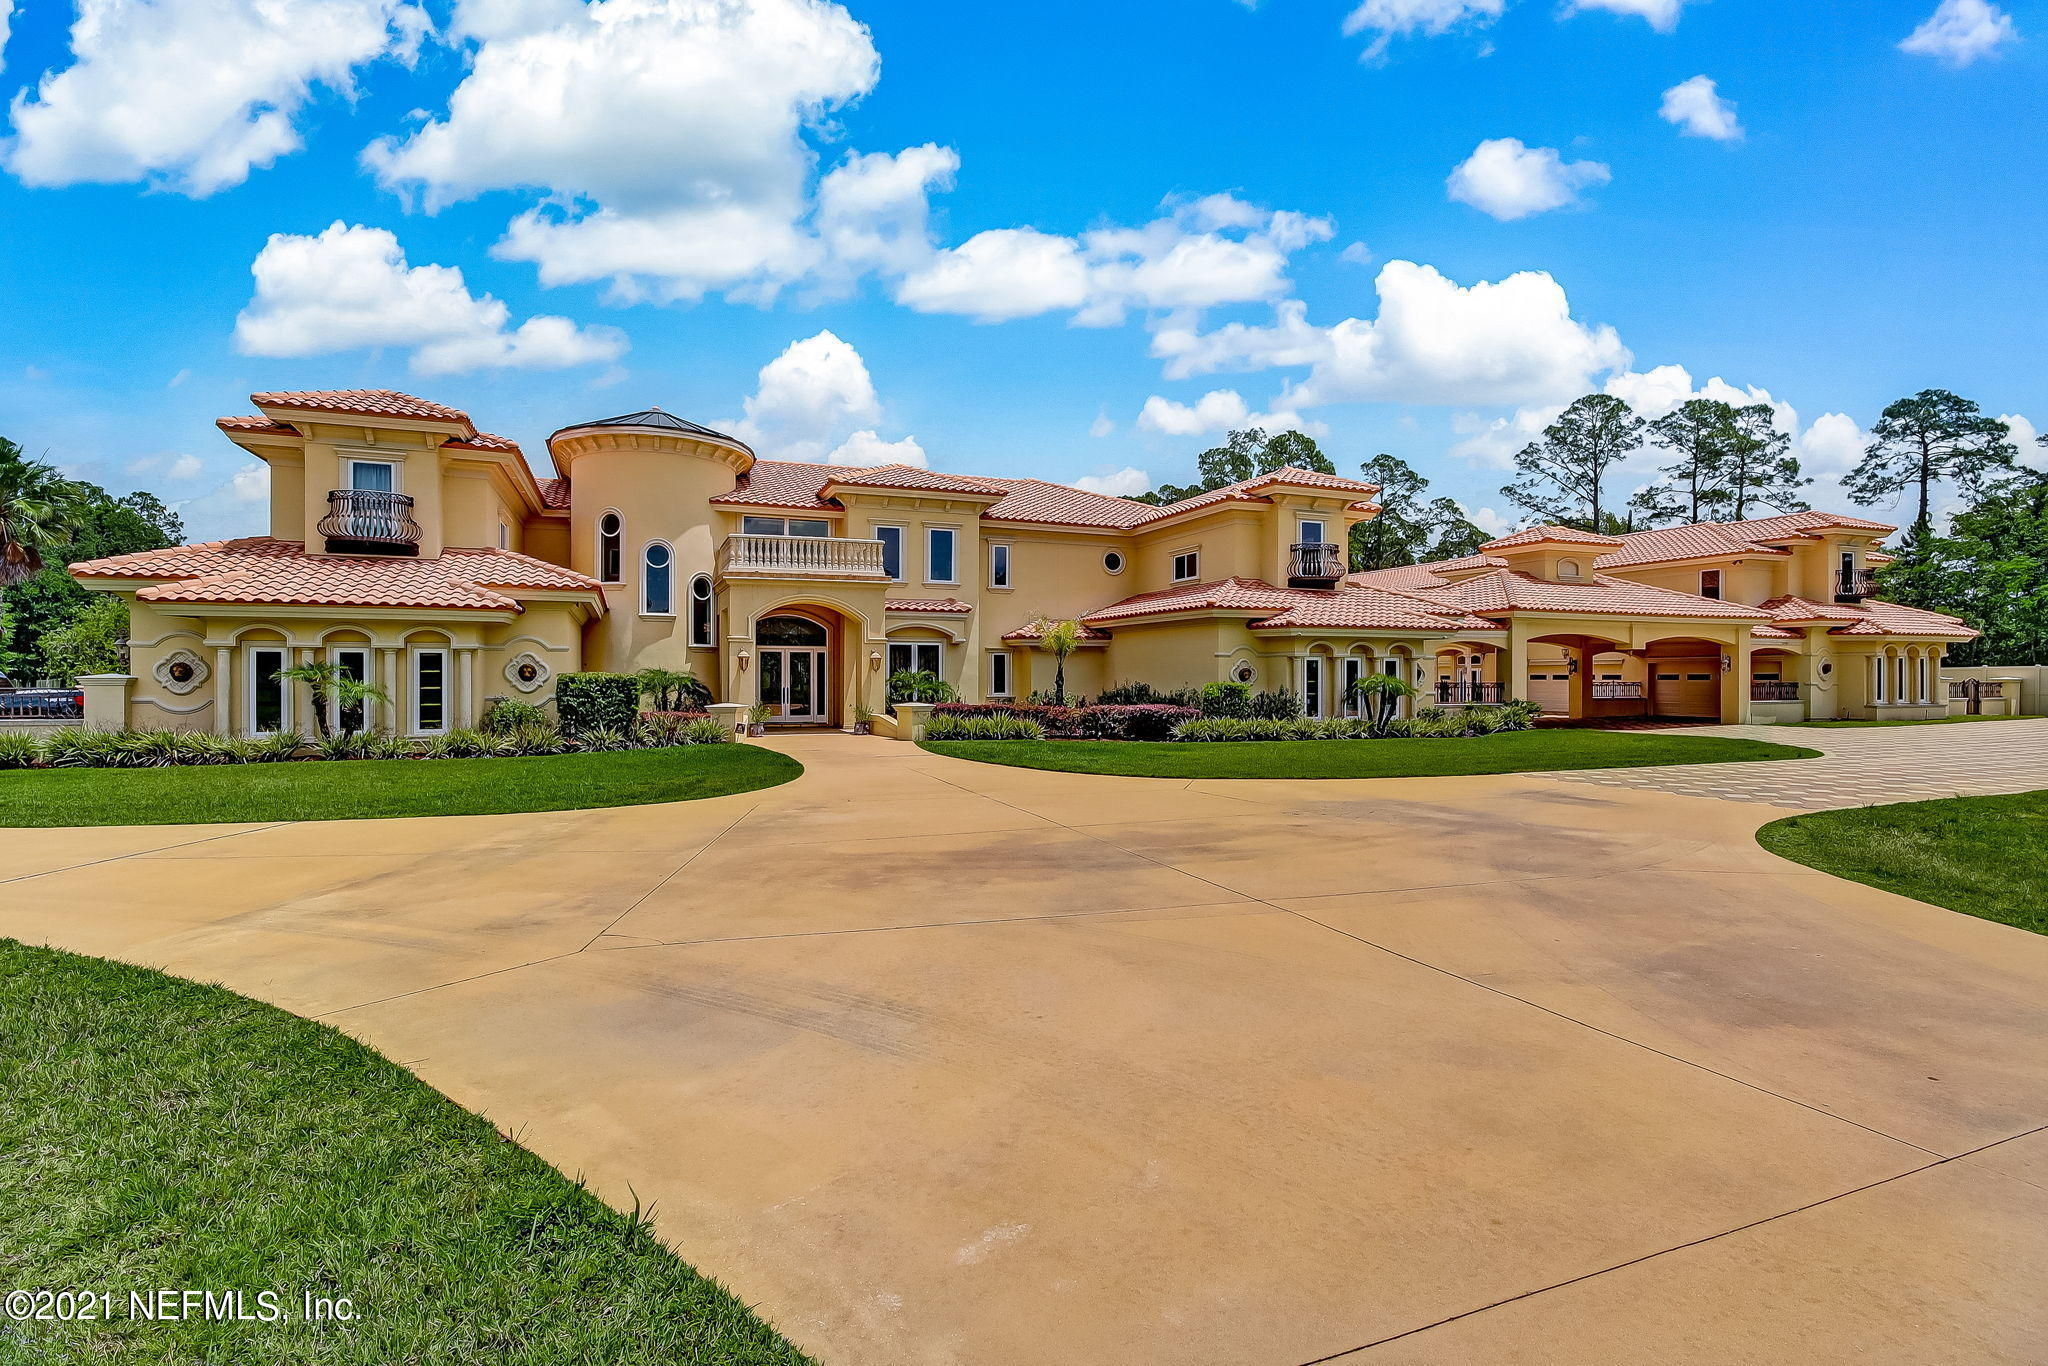 Truly remarkable and rare 9 acre gated estate offers 11,000 sf home w/ 3,500 sf guest house w/ resort-inspired 7,000+ sf enclosed pool & patio area and six oversized 2 car finished garages to showcase your collection. This well built custom home is designed for large family, multi-generational living & entertaining! The main house offers 11,000 sf of beautifully finished living spaces, a stunning owner's suite + 5 additional bedroom suites each with private ensuite baths, private executive office, theater or lounge, one of a kind ''Man Cave,'' balconies, incredible resort-inspired enclosed pool + two 2 car garages. The ''Guest House'' offers an additional four oversized 2 car garages with a 3/3 guest house & studio apartment located over the garages. View video and photos for more details!